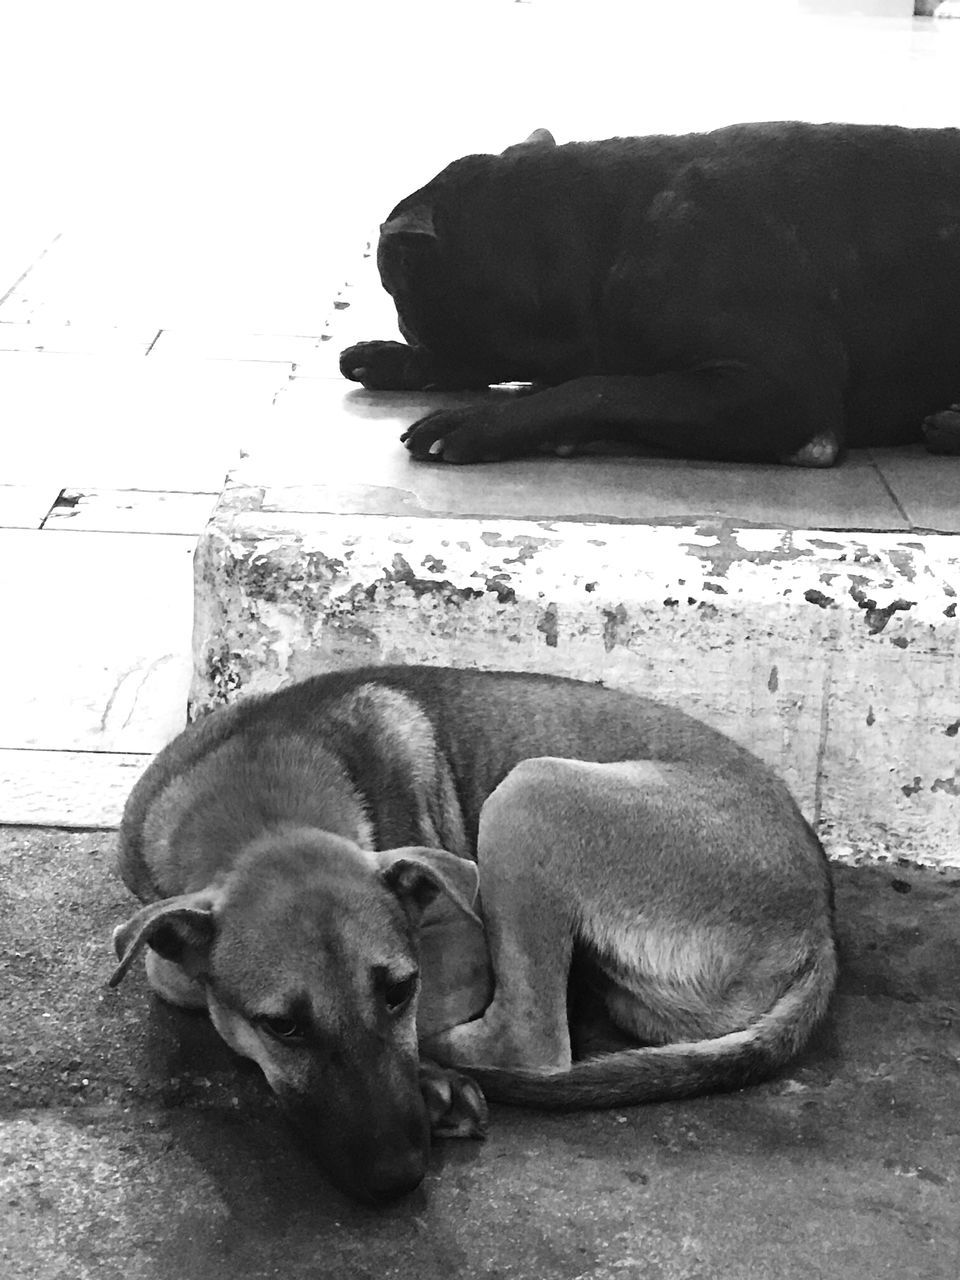 animal themes, mammal, pets, dog, domestic animals, two animals, sleeping, relaxation, resting, no people, eyes closed, lying down, togetherness, young animal, sitting, indoors, full length, day